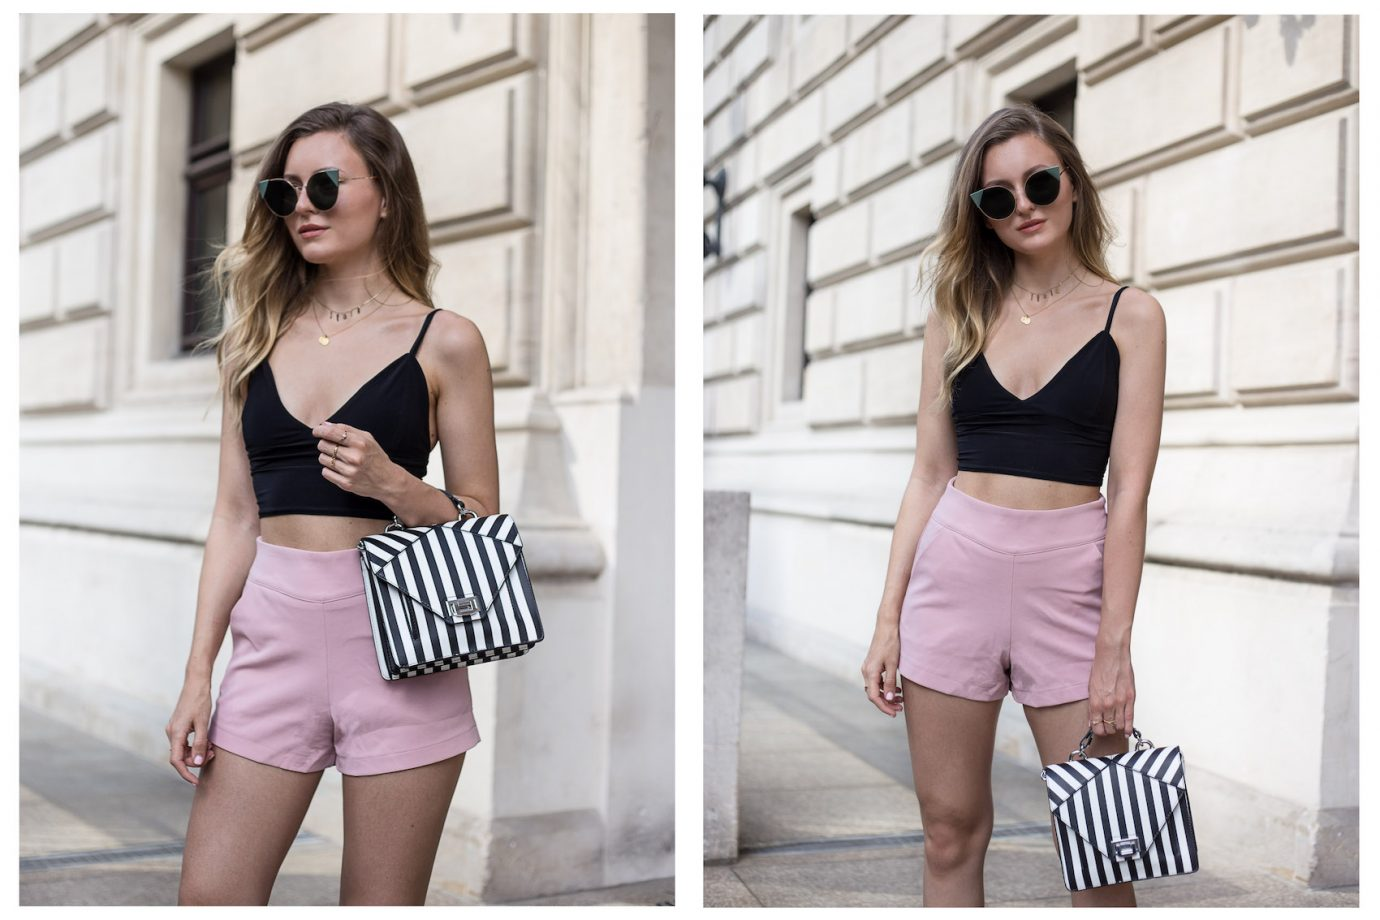 FENDI SUNGLASSES & BUSTIER TOP